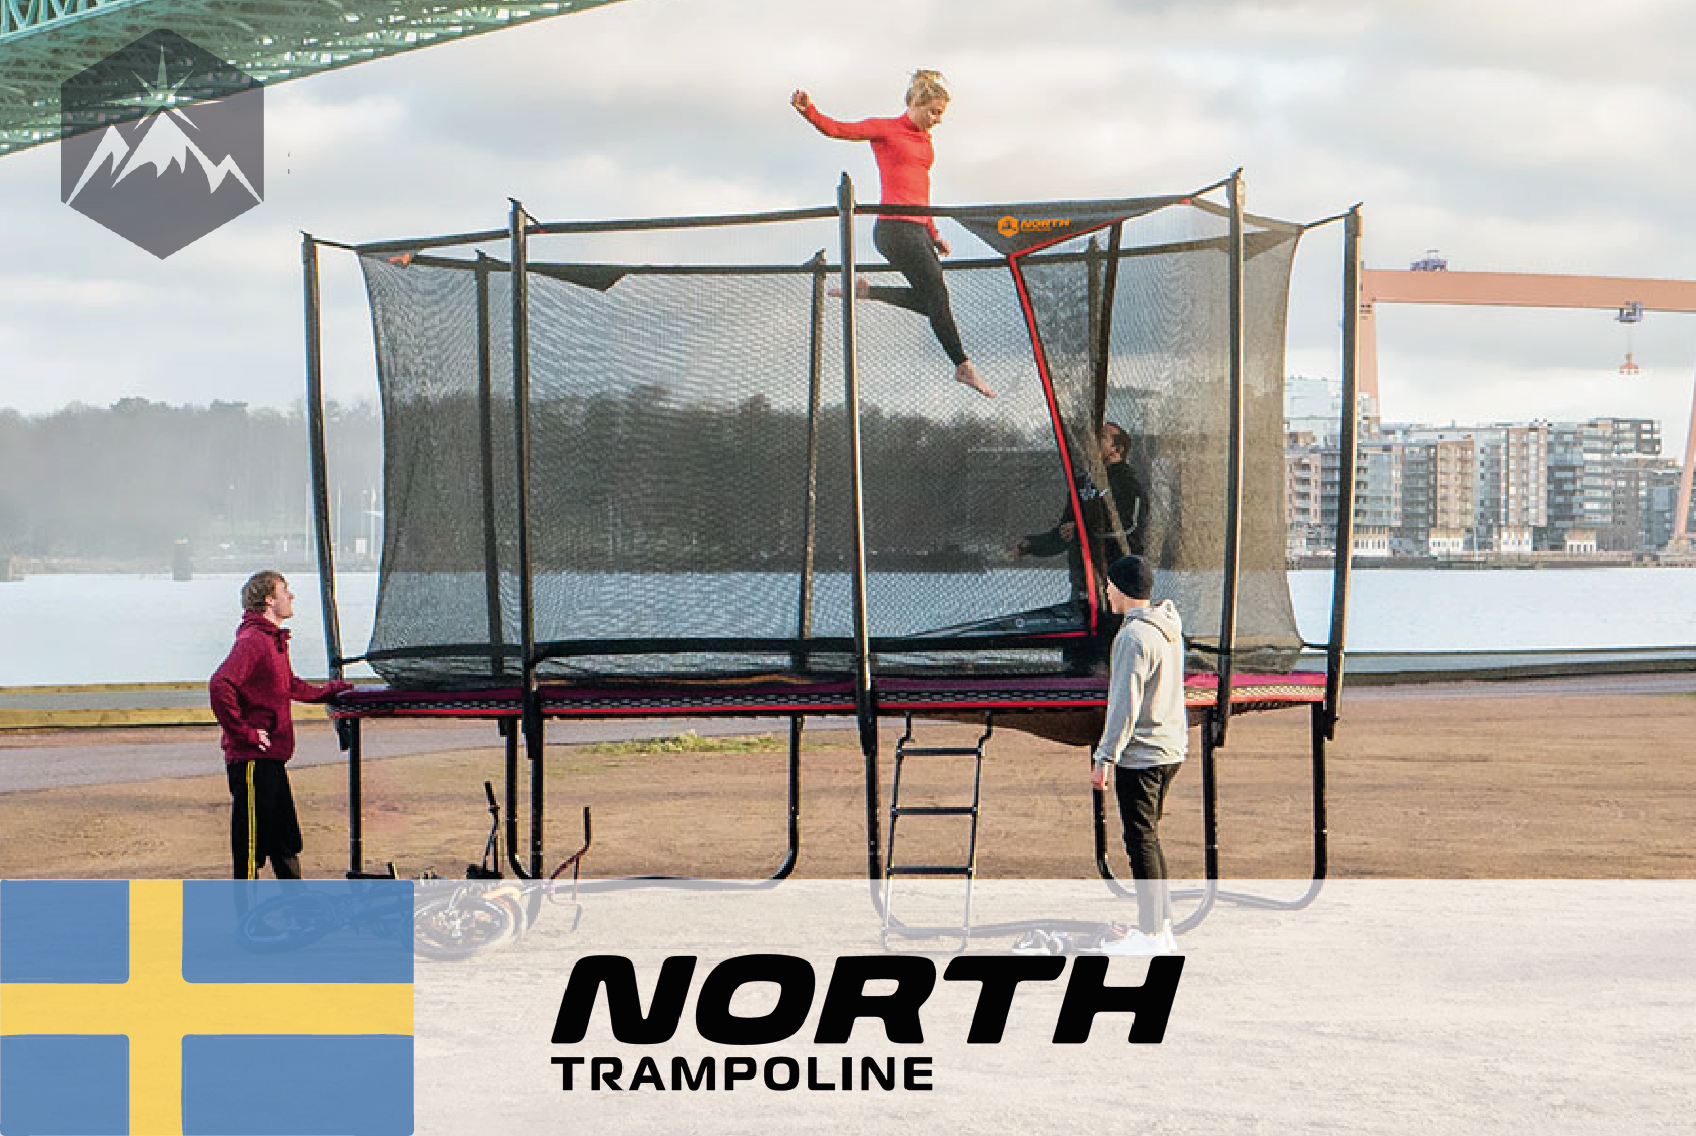 #22 North Trampoline - Durable and repairable trampolines of 100% recyclable materials - CIRCit Nord